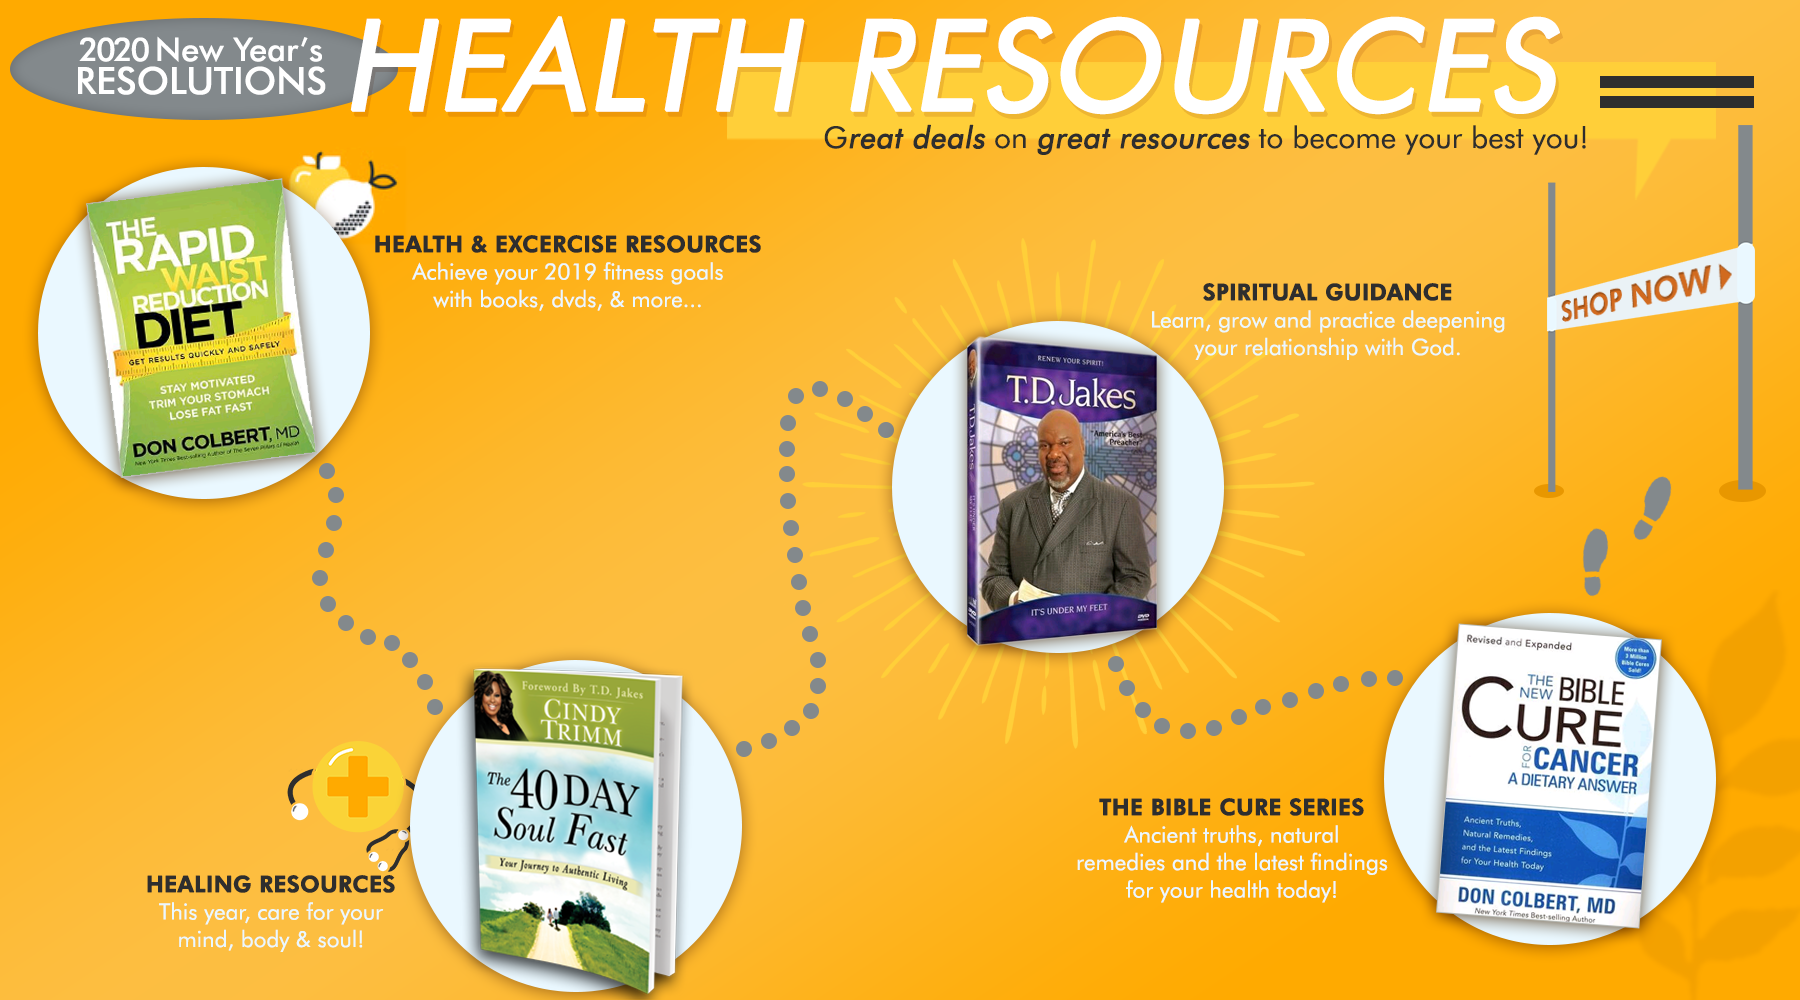 New Year's Health Resources